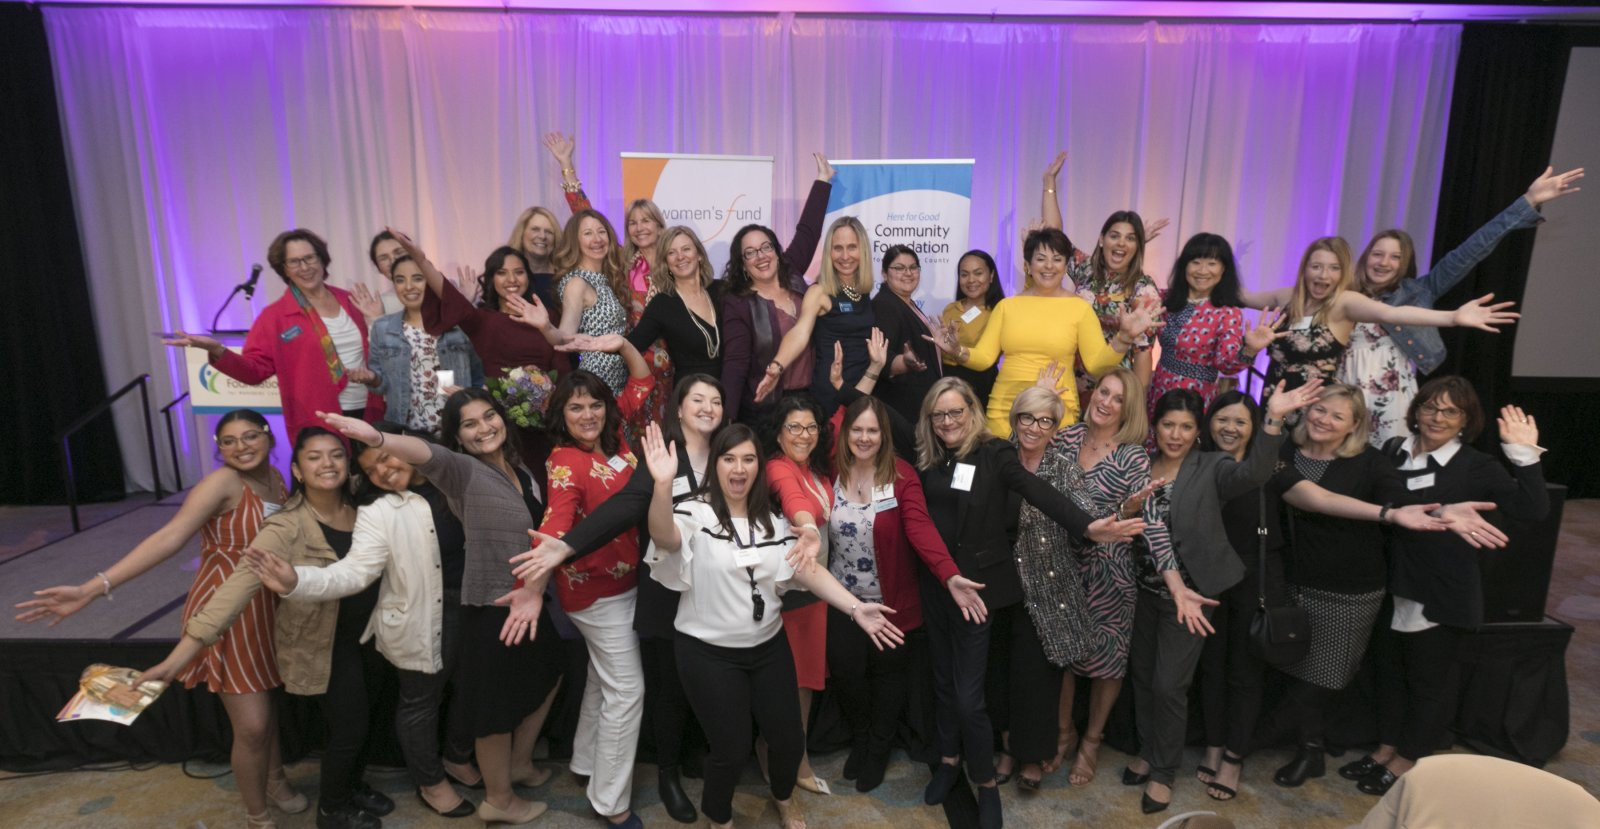 Women's Fund: Leading Change